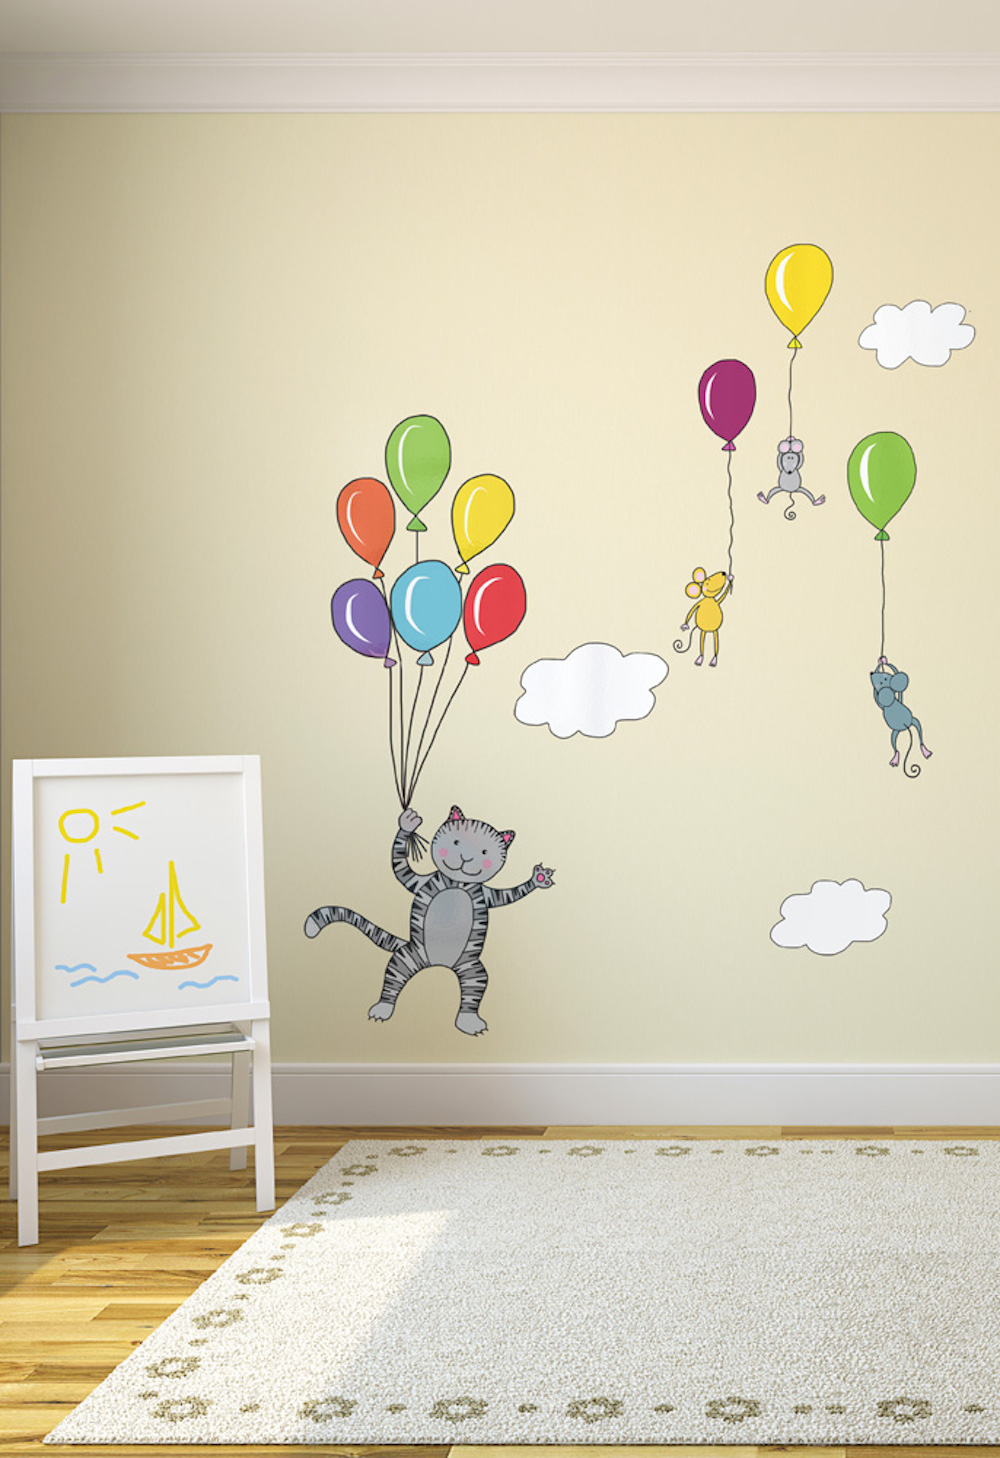 Wall sticker Balloons